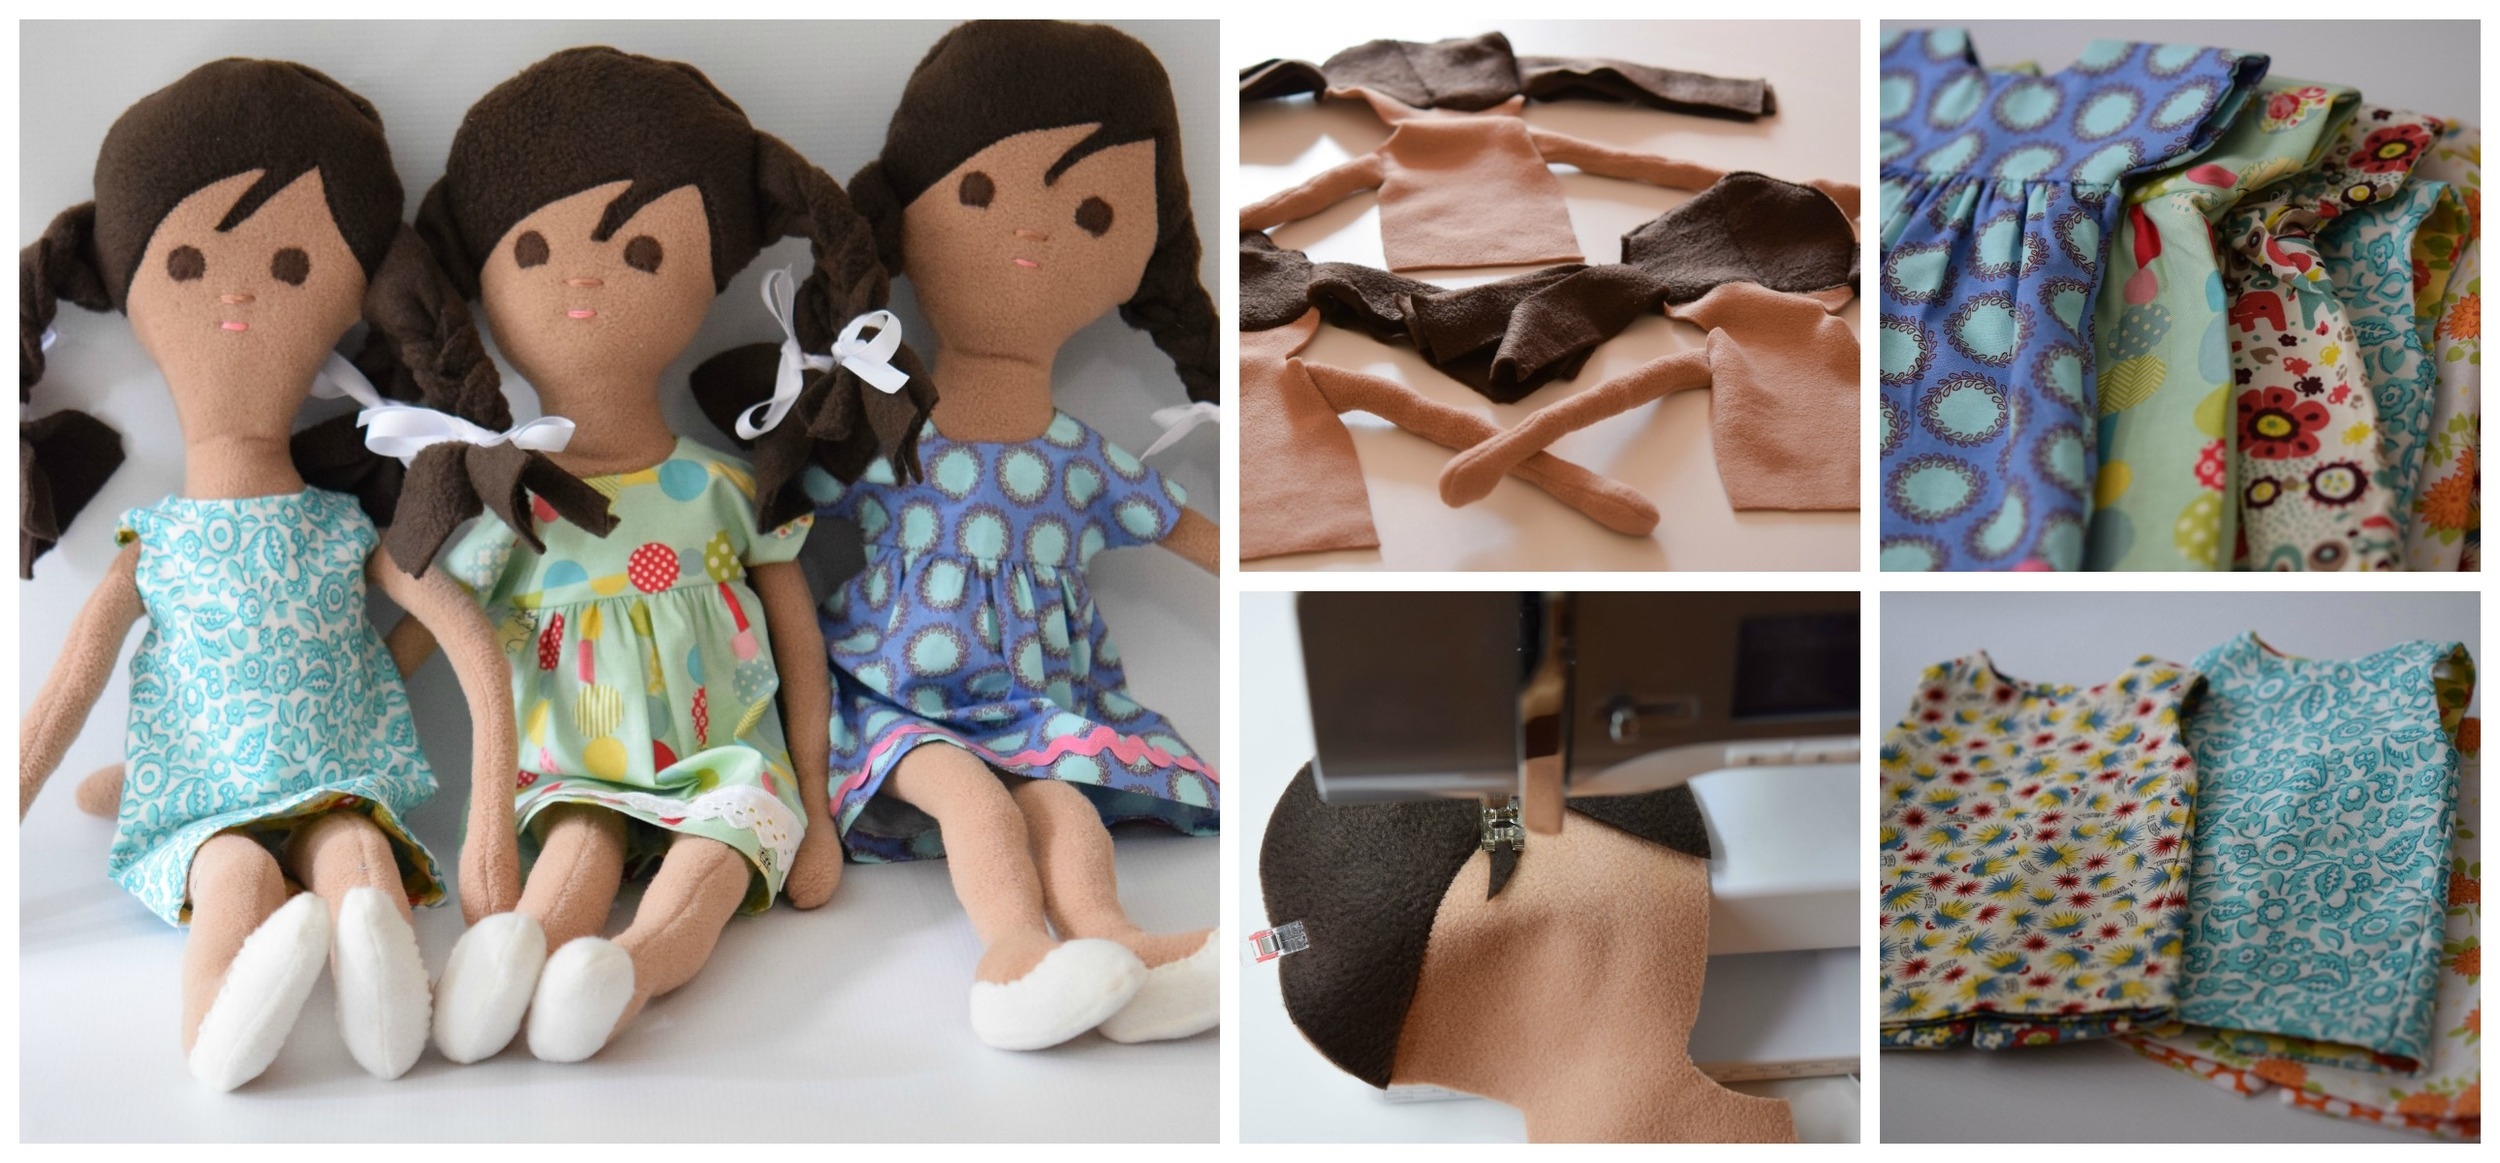 Dolls for girls ages 3-12. Designed to be portable and played with. Each comes with a change of clothes.